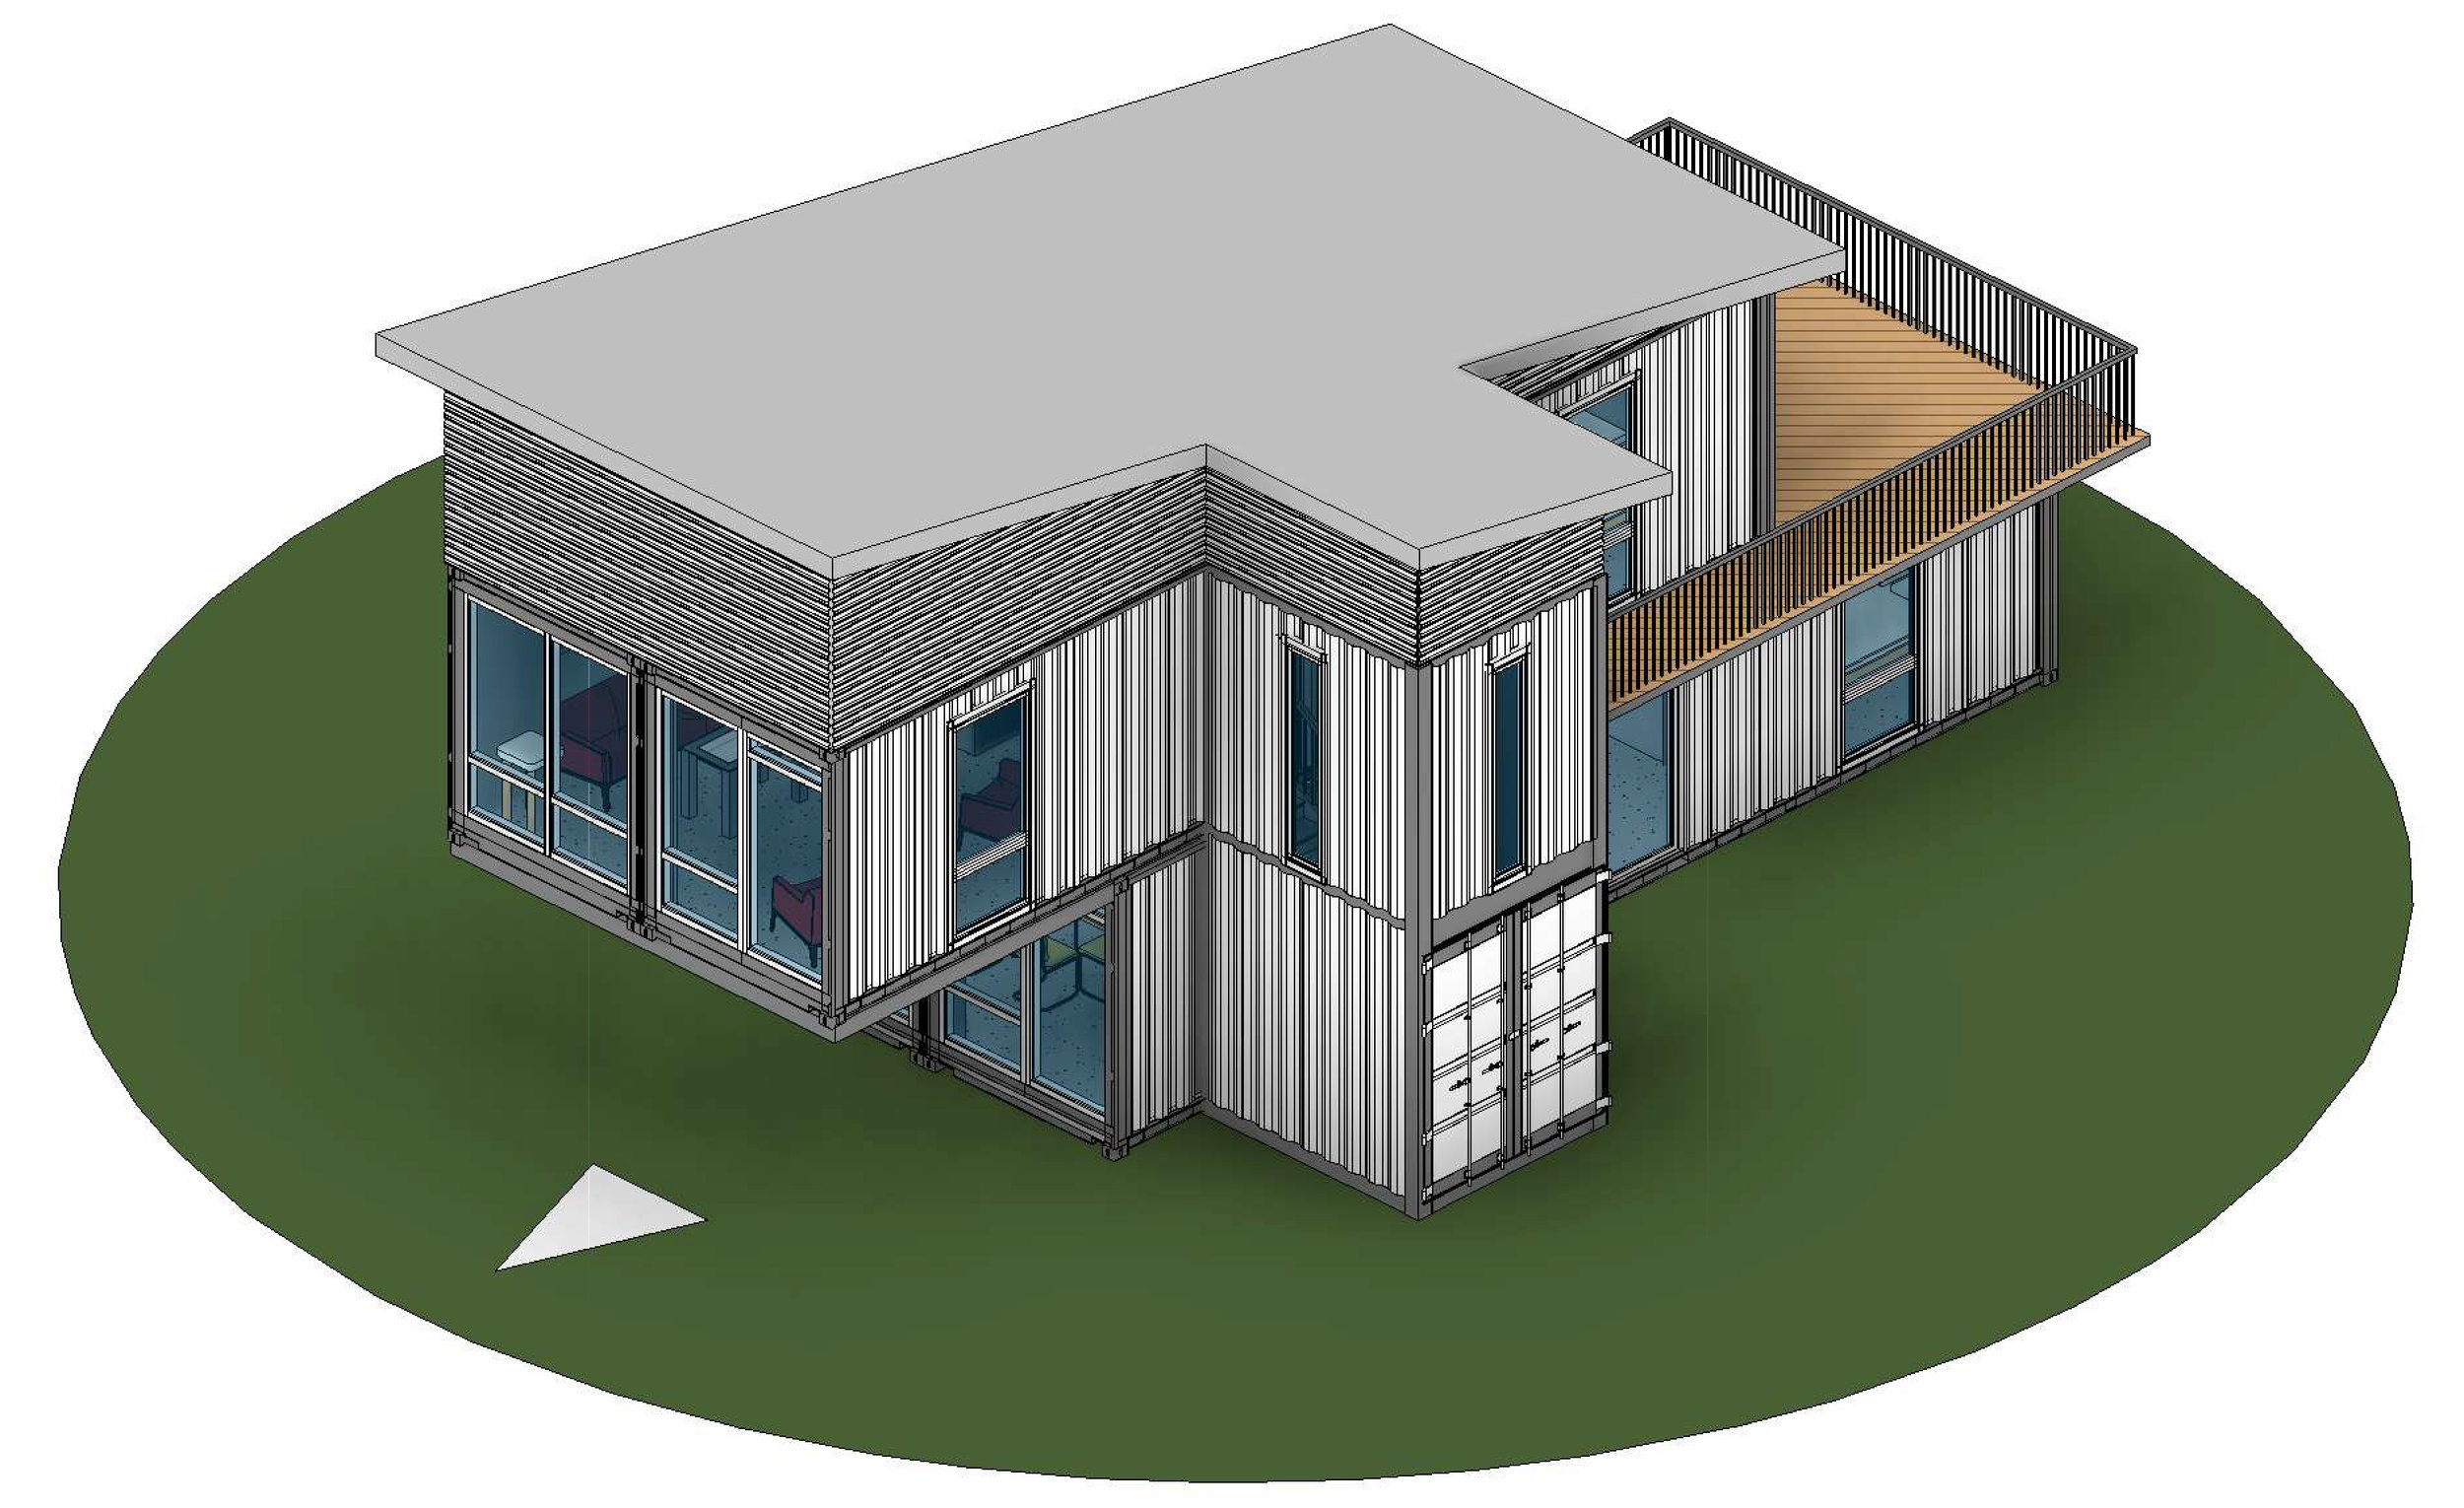 cantilever house export.jpg